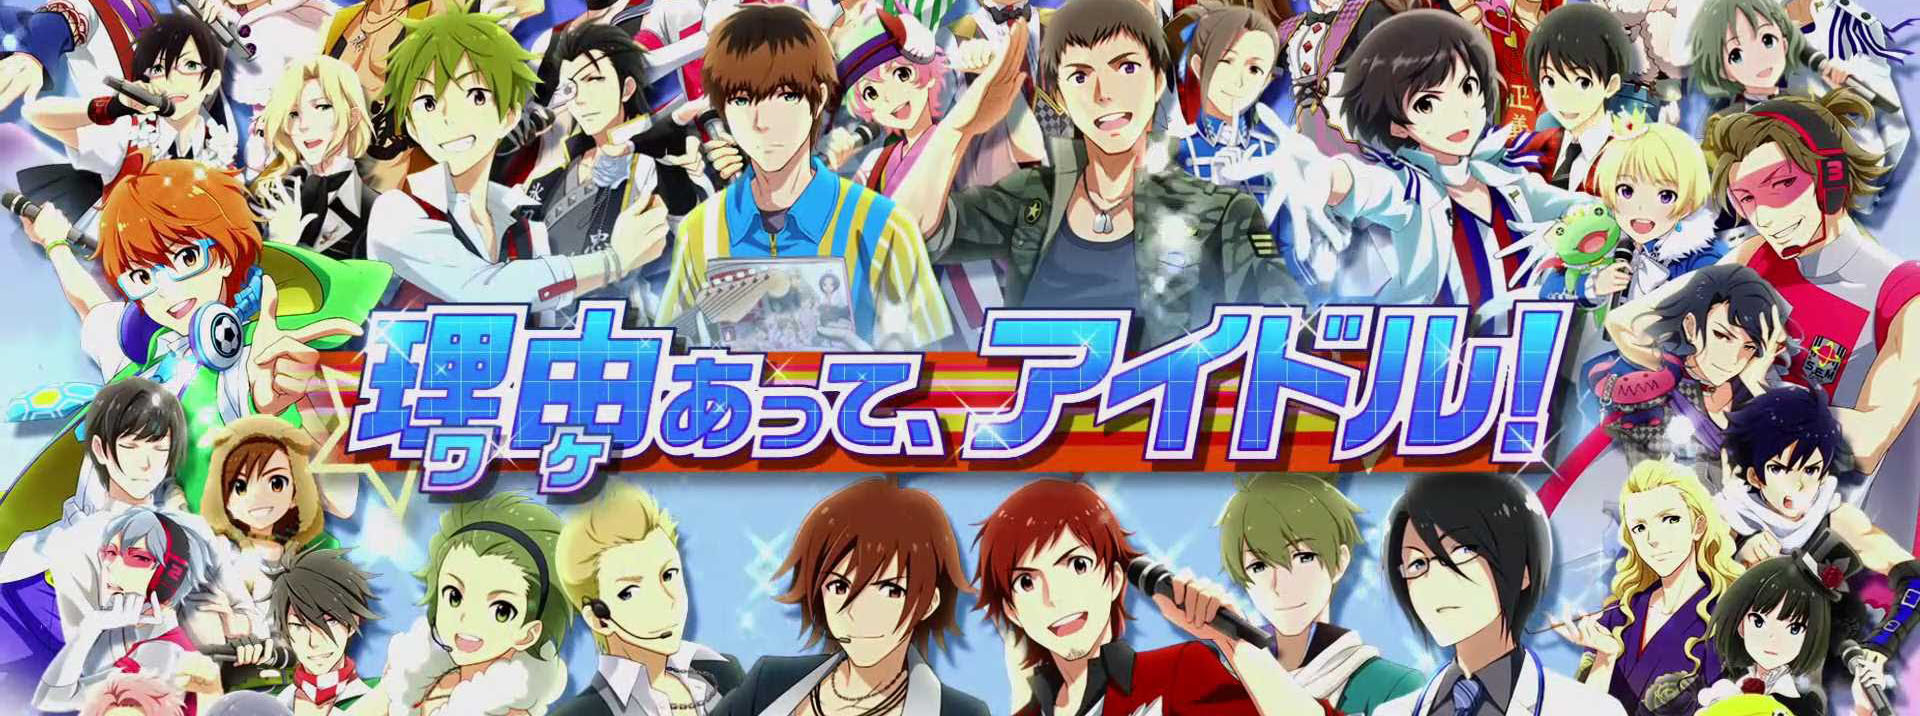 the idol master side m - banner